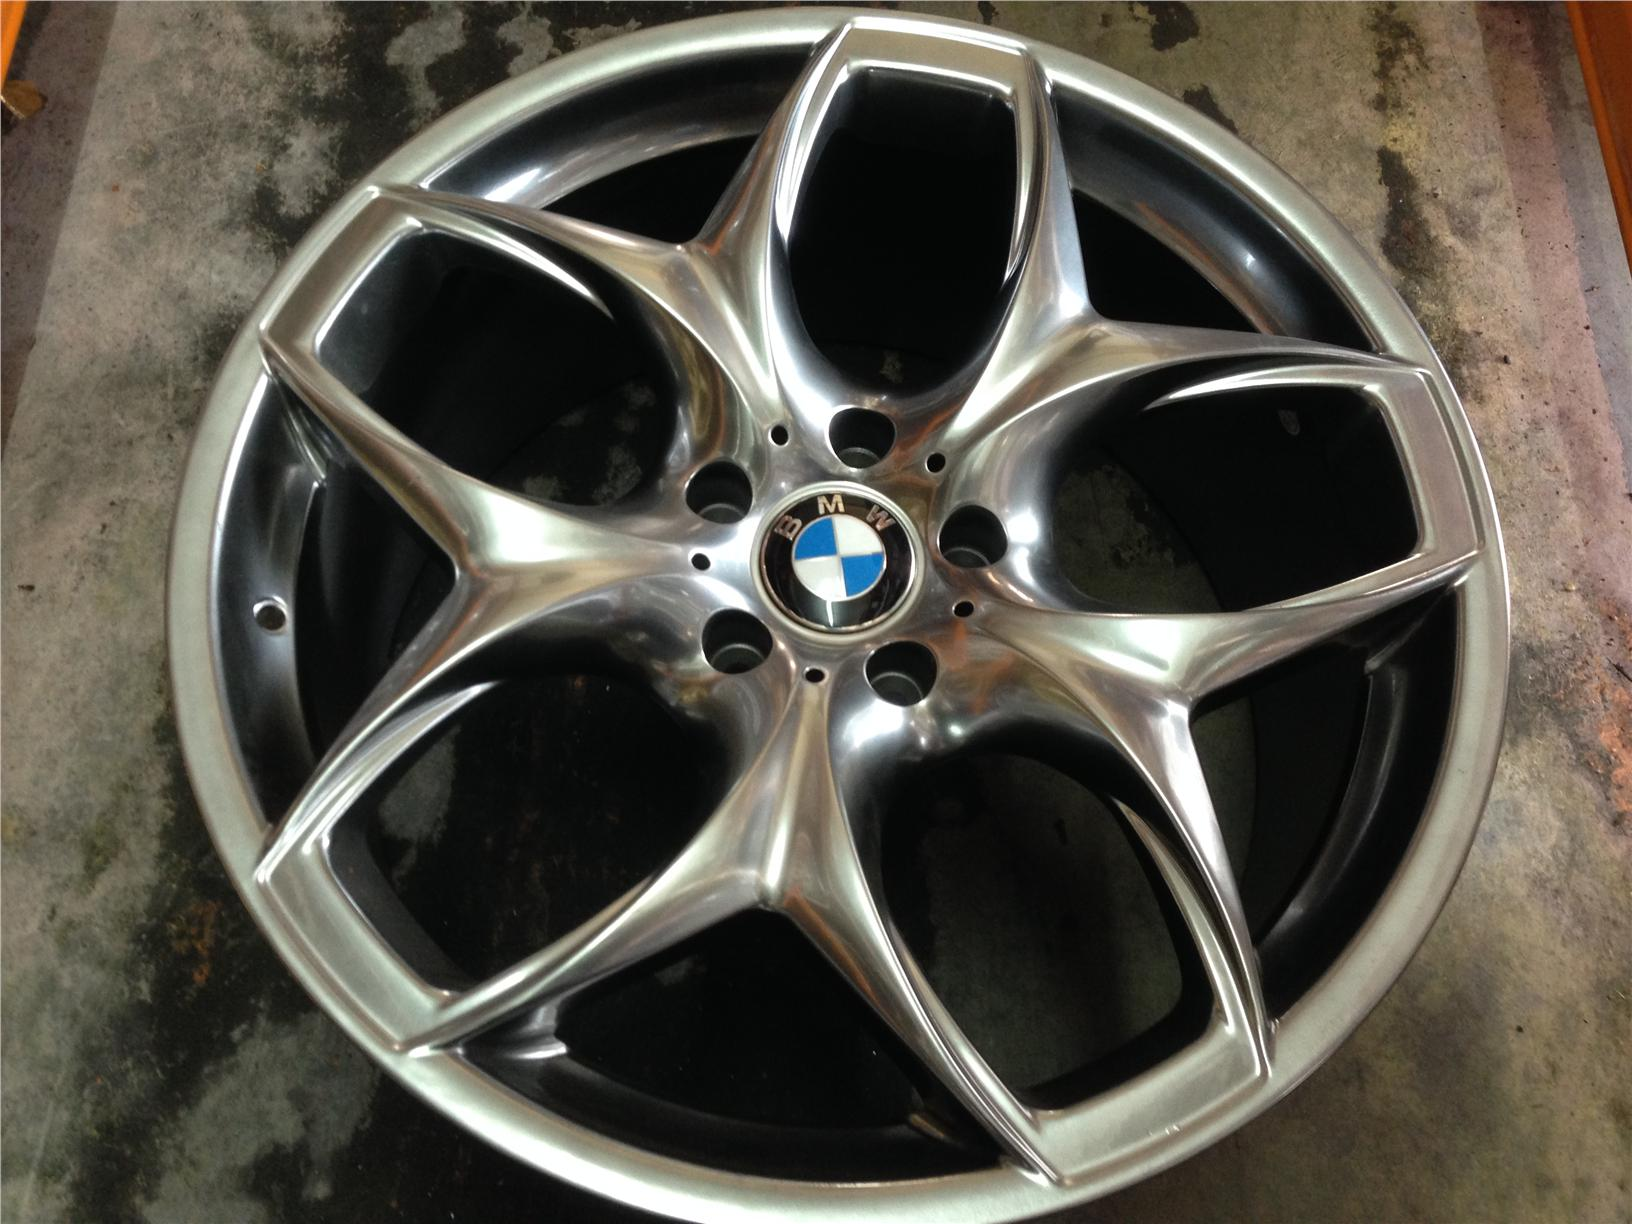 New 20 Inch Bmw Style 215 Design Rim End 2 10 2016 3 15 Pm